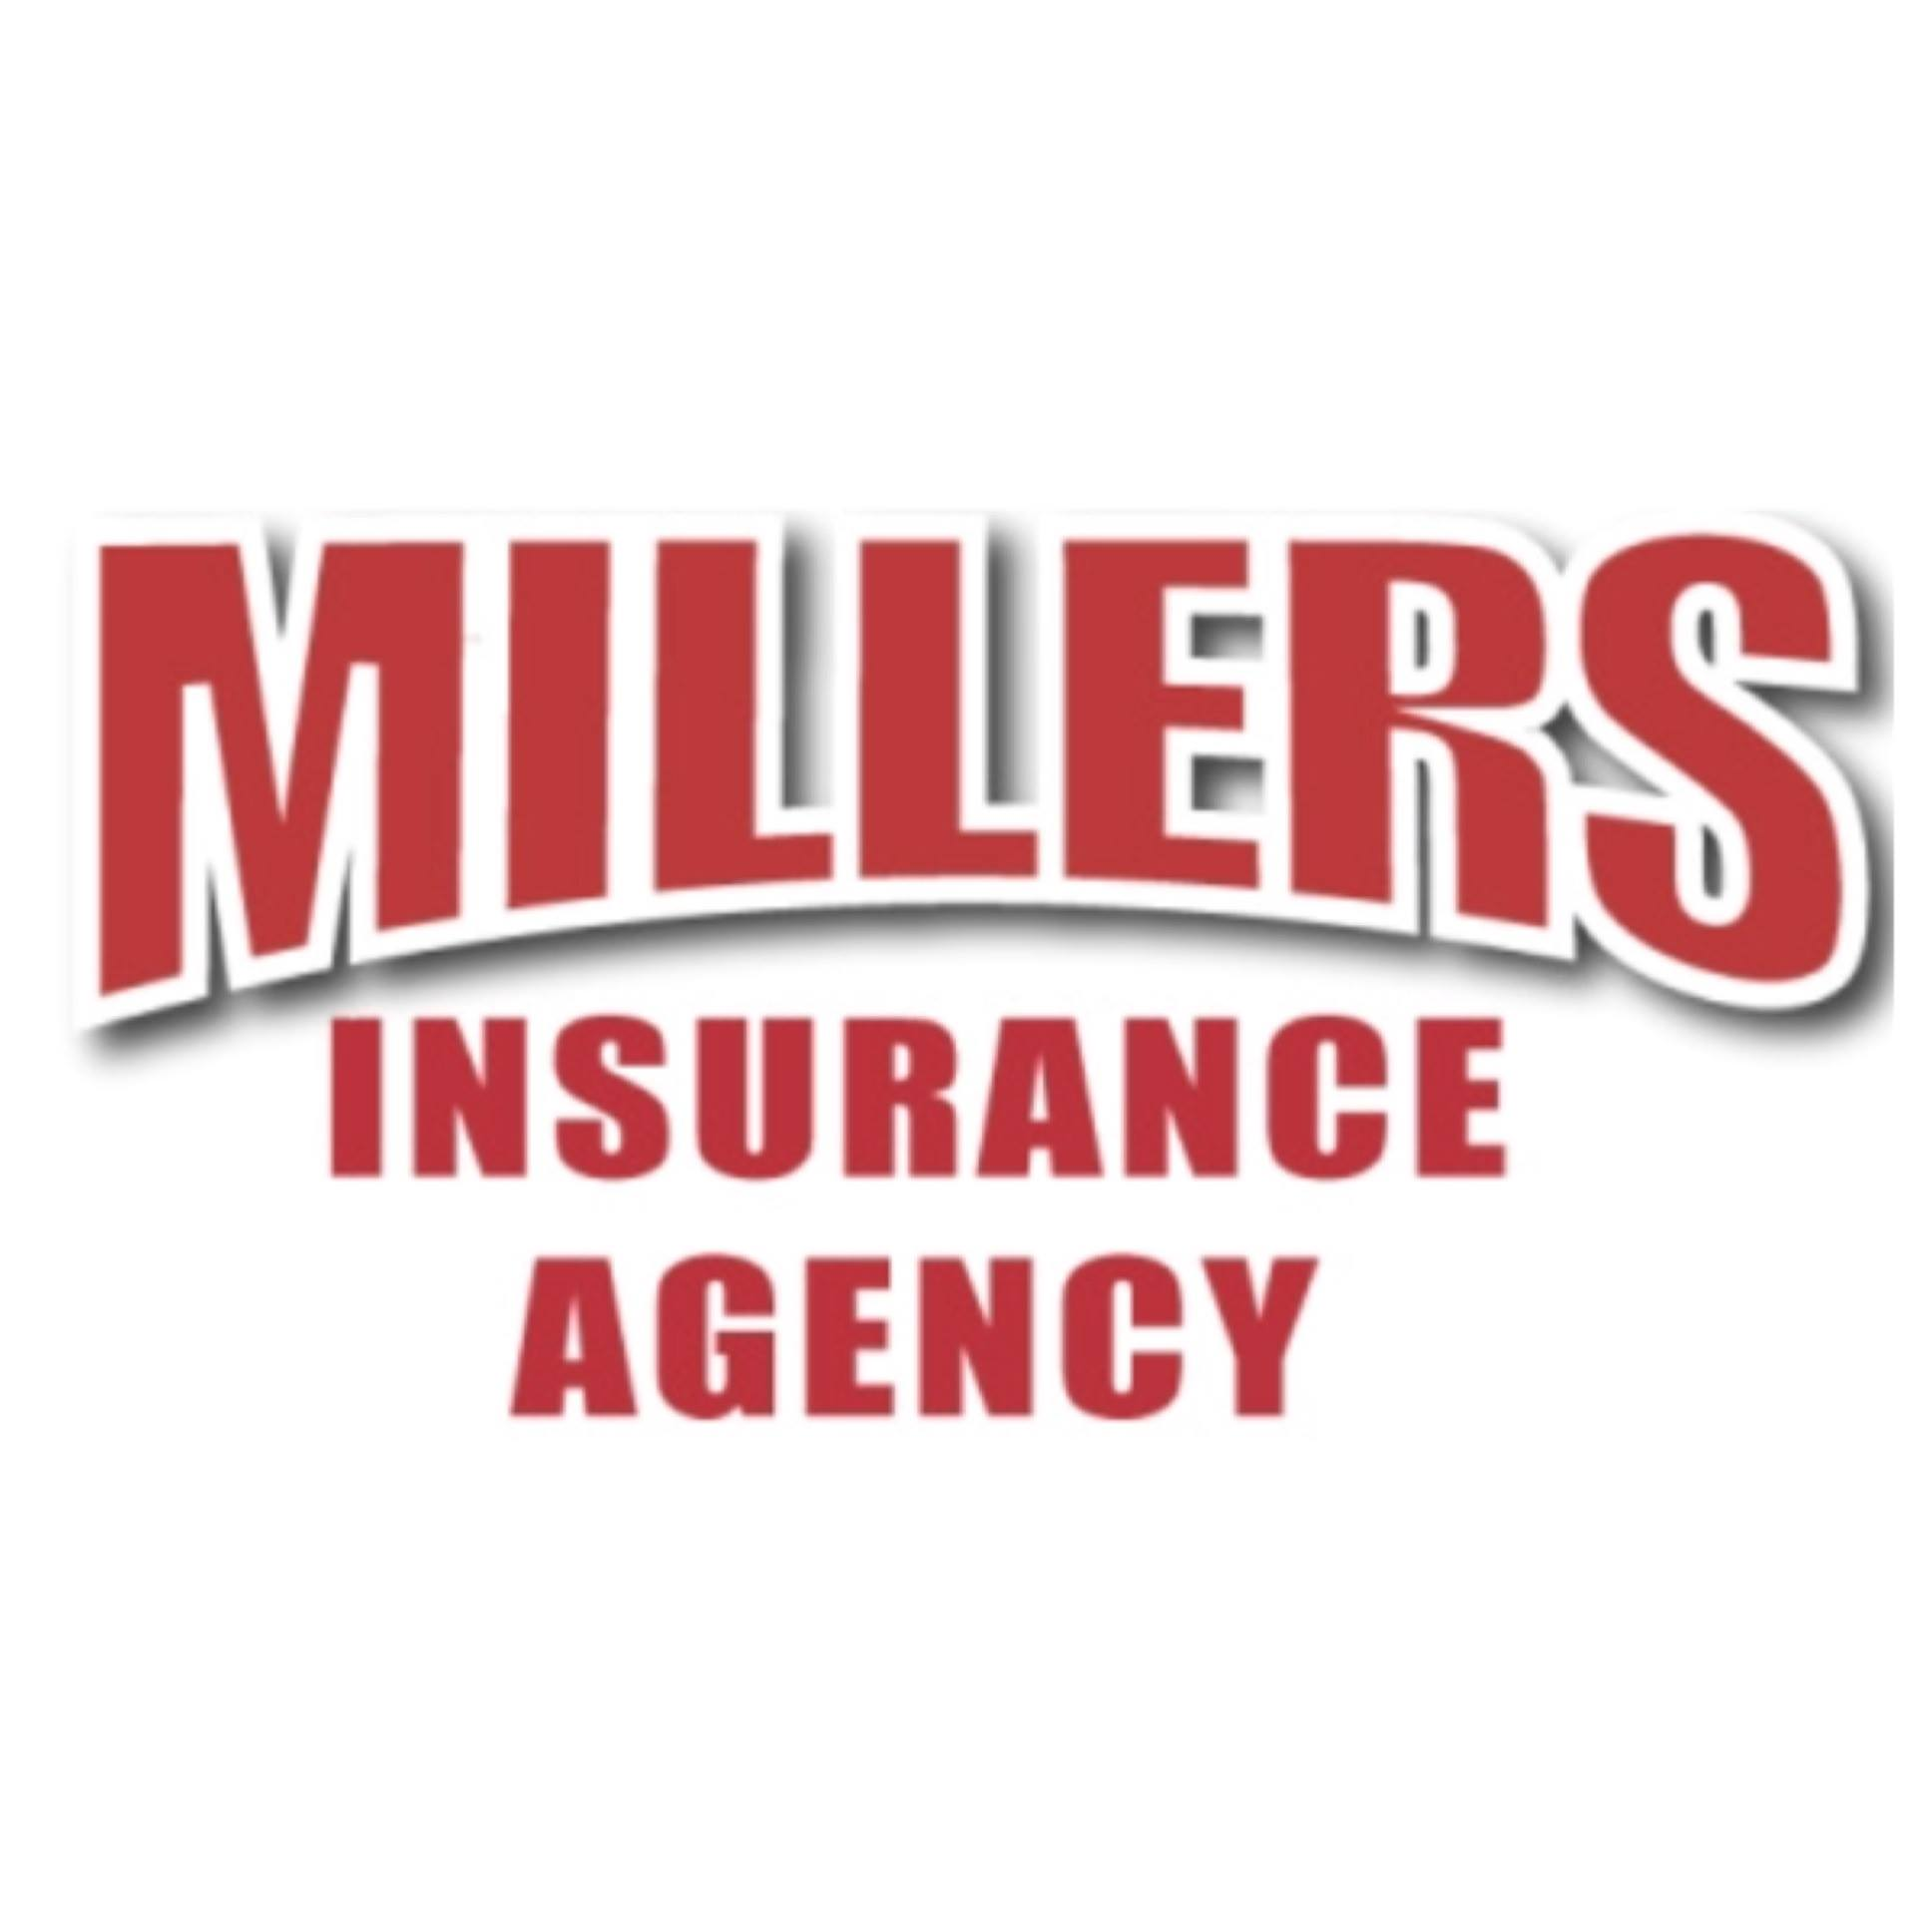 Business logo of Millers Insurance Inc